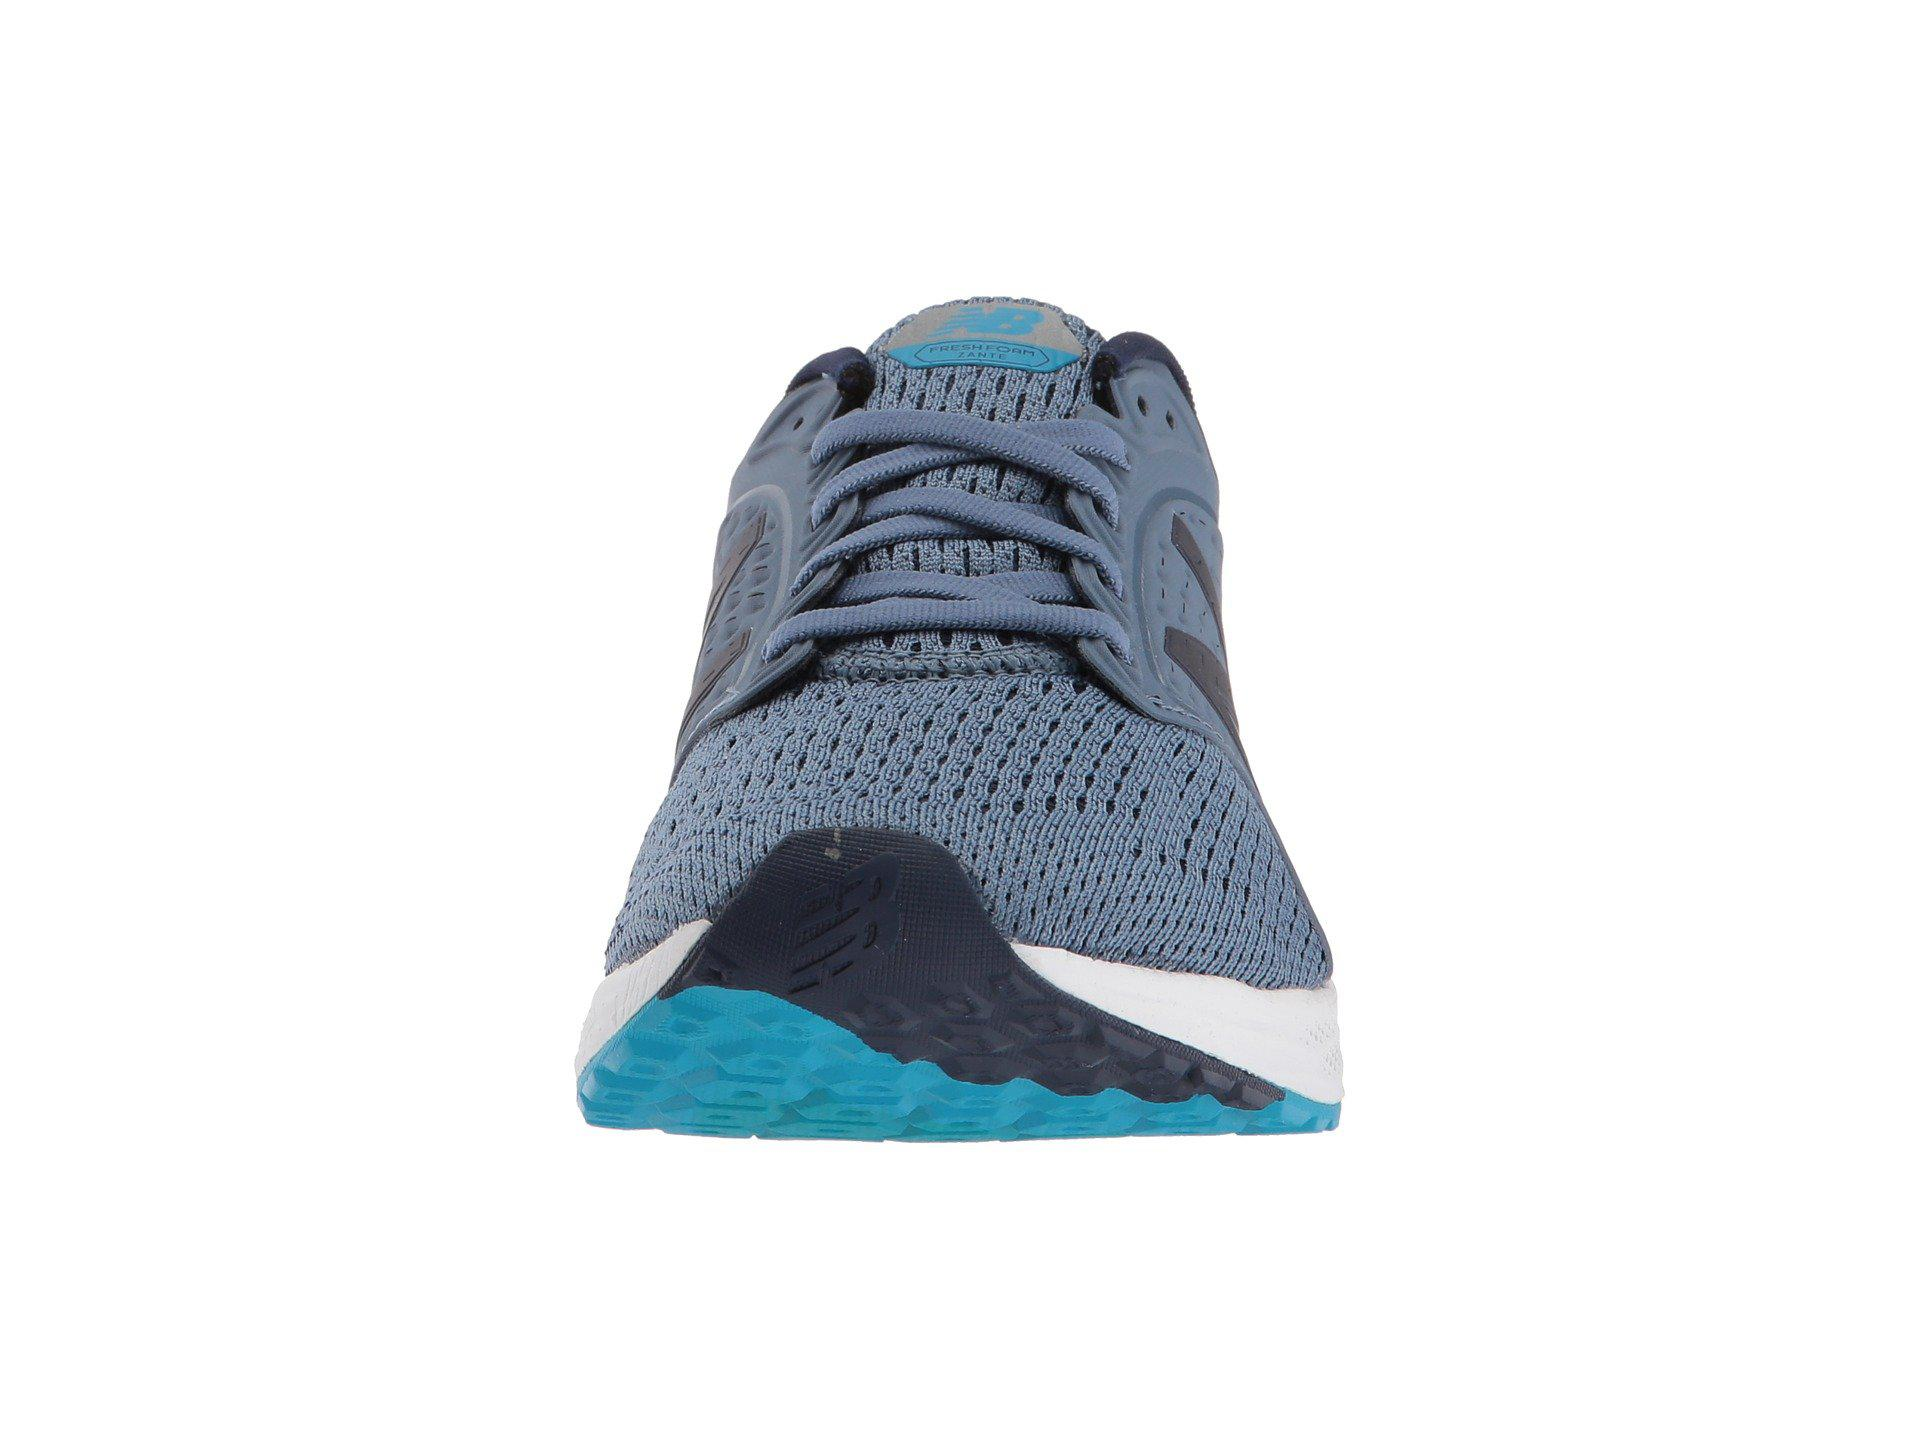 Blue Fresh Foam Zante V4 (fijivivid Coral) Women's Running Shoes